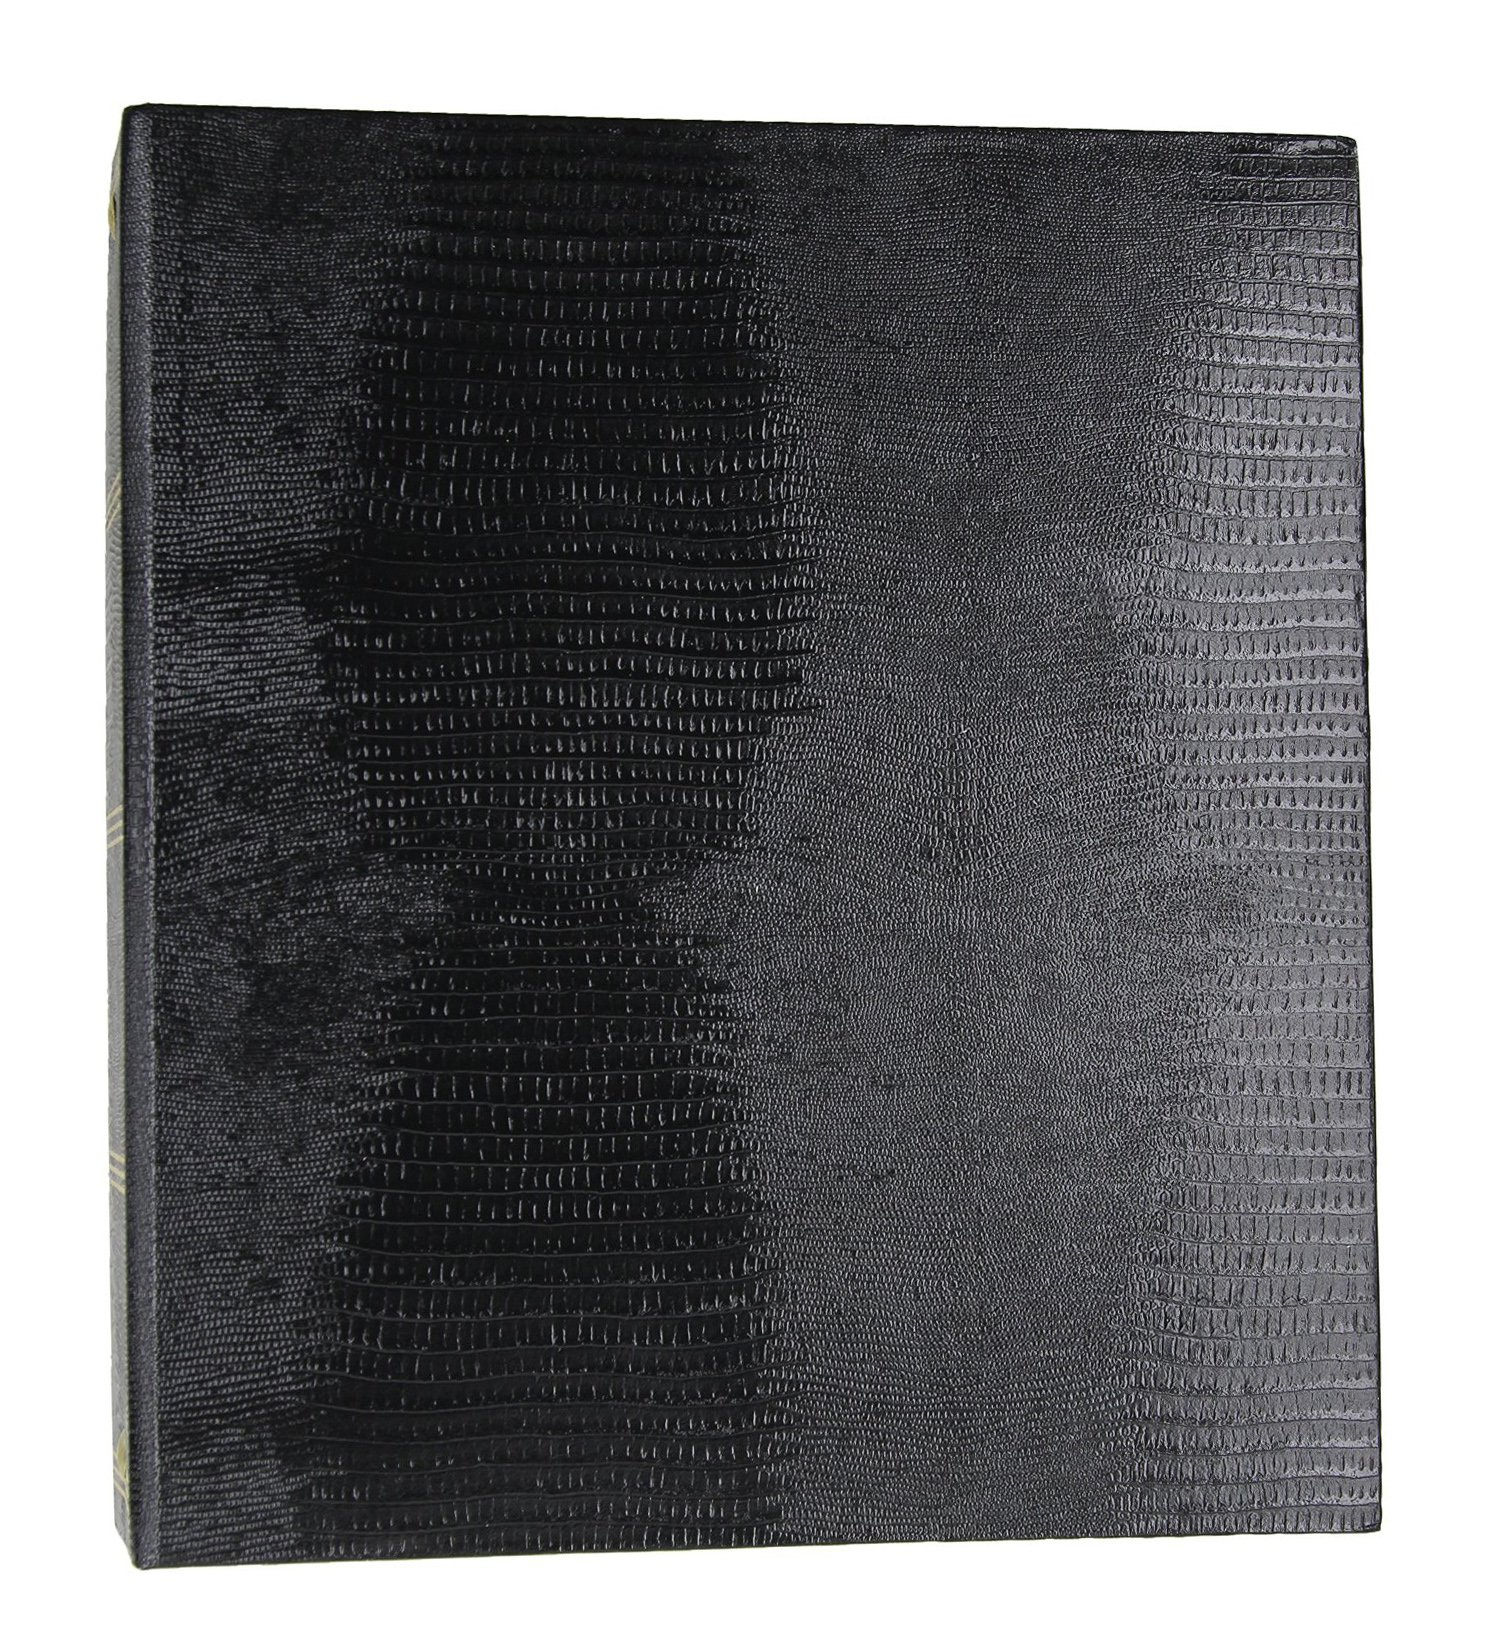 Photo Albums Magnetic 3-Ring with 100 Pages, 8.25'' x 10.5'', Black Color